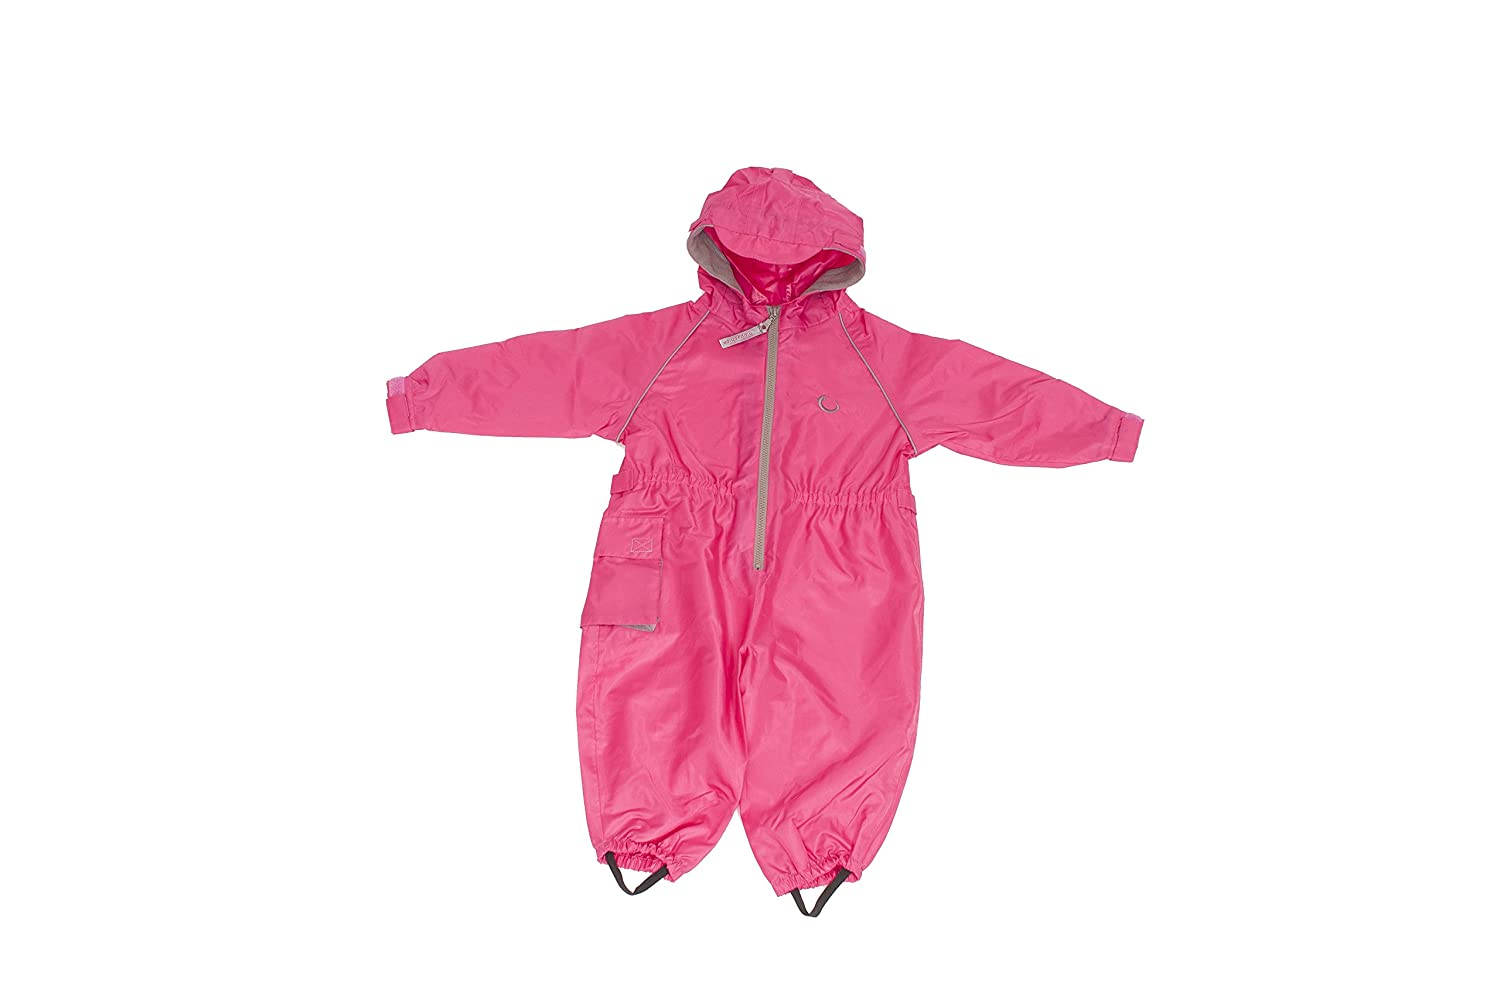 Hippychick Waterproof All-in-One Suit - Pink, 18-24 Months HWNAP18-24